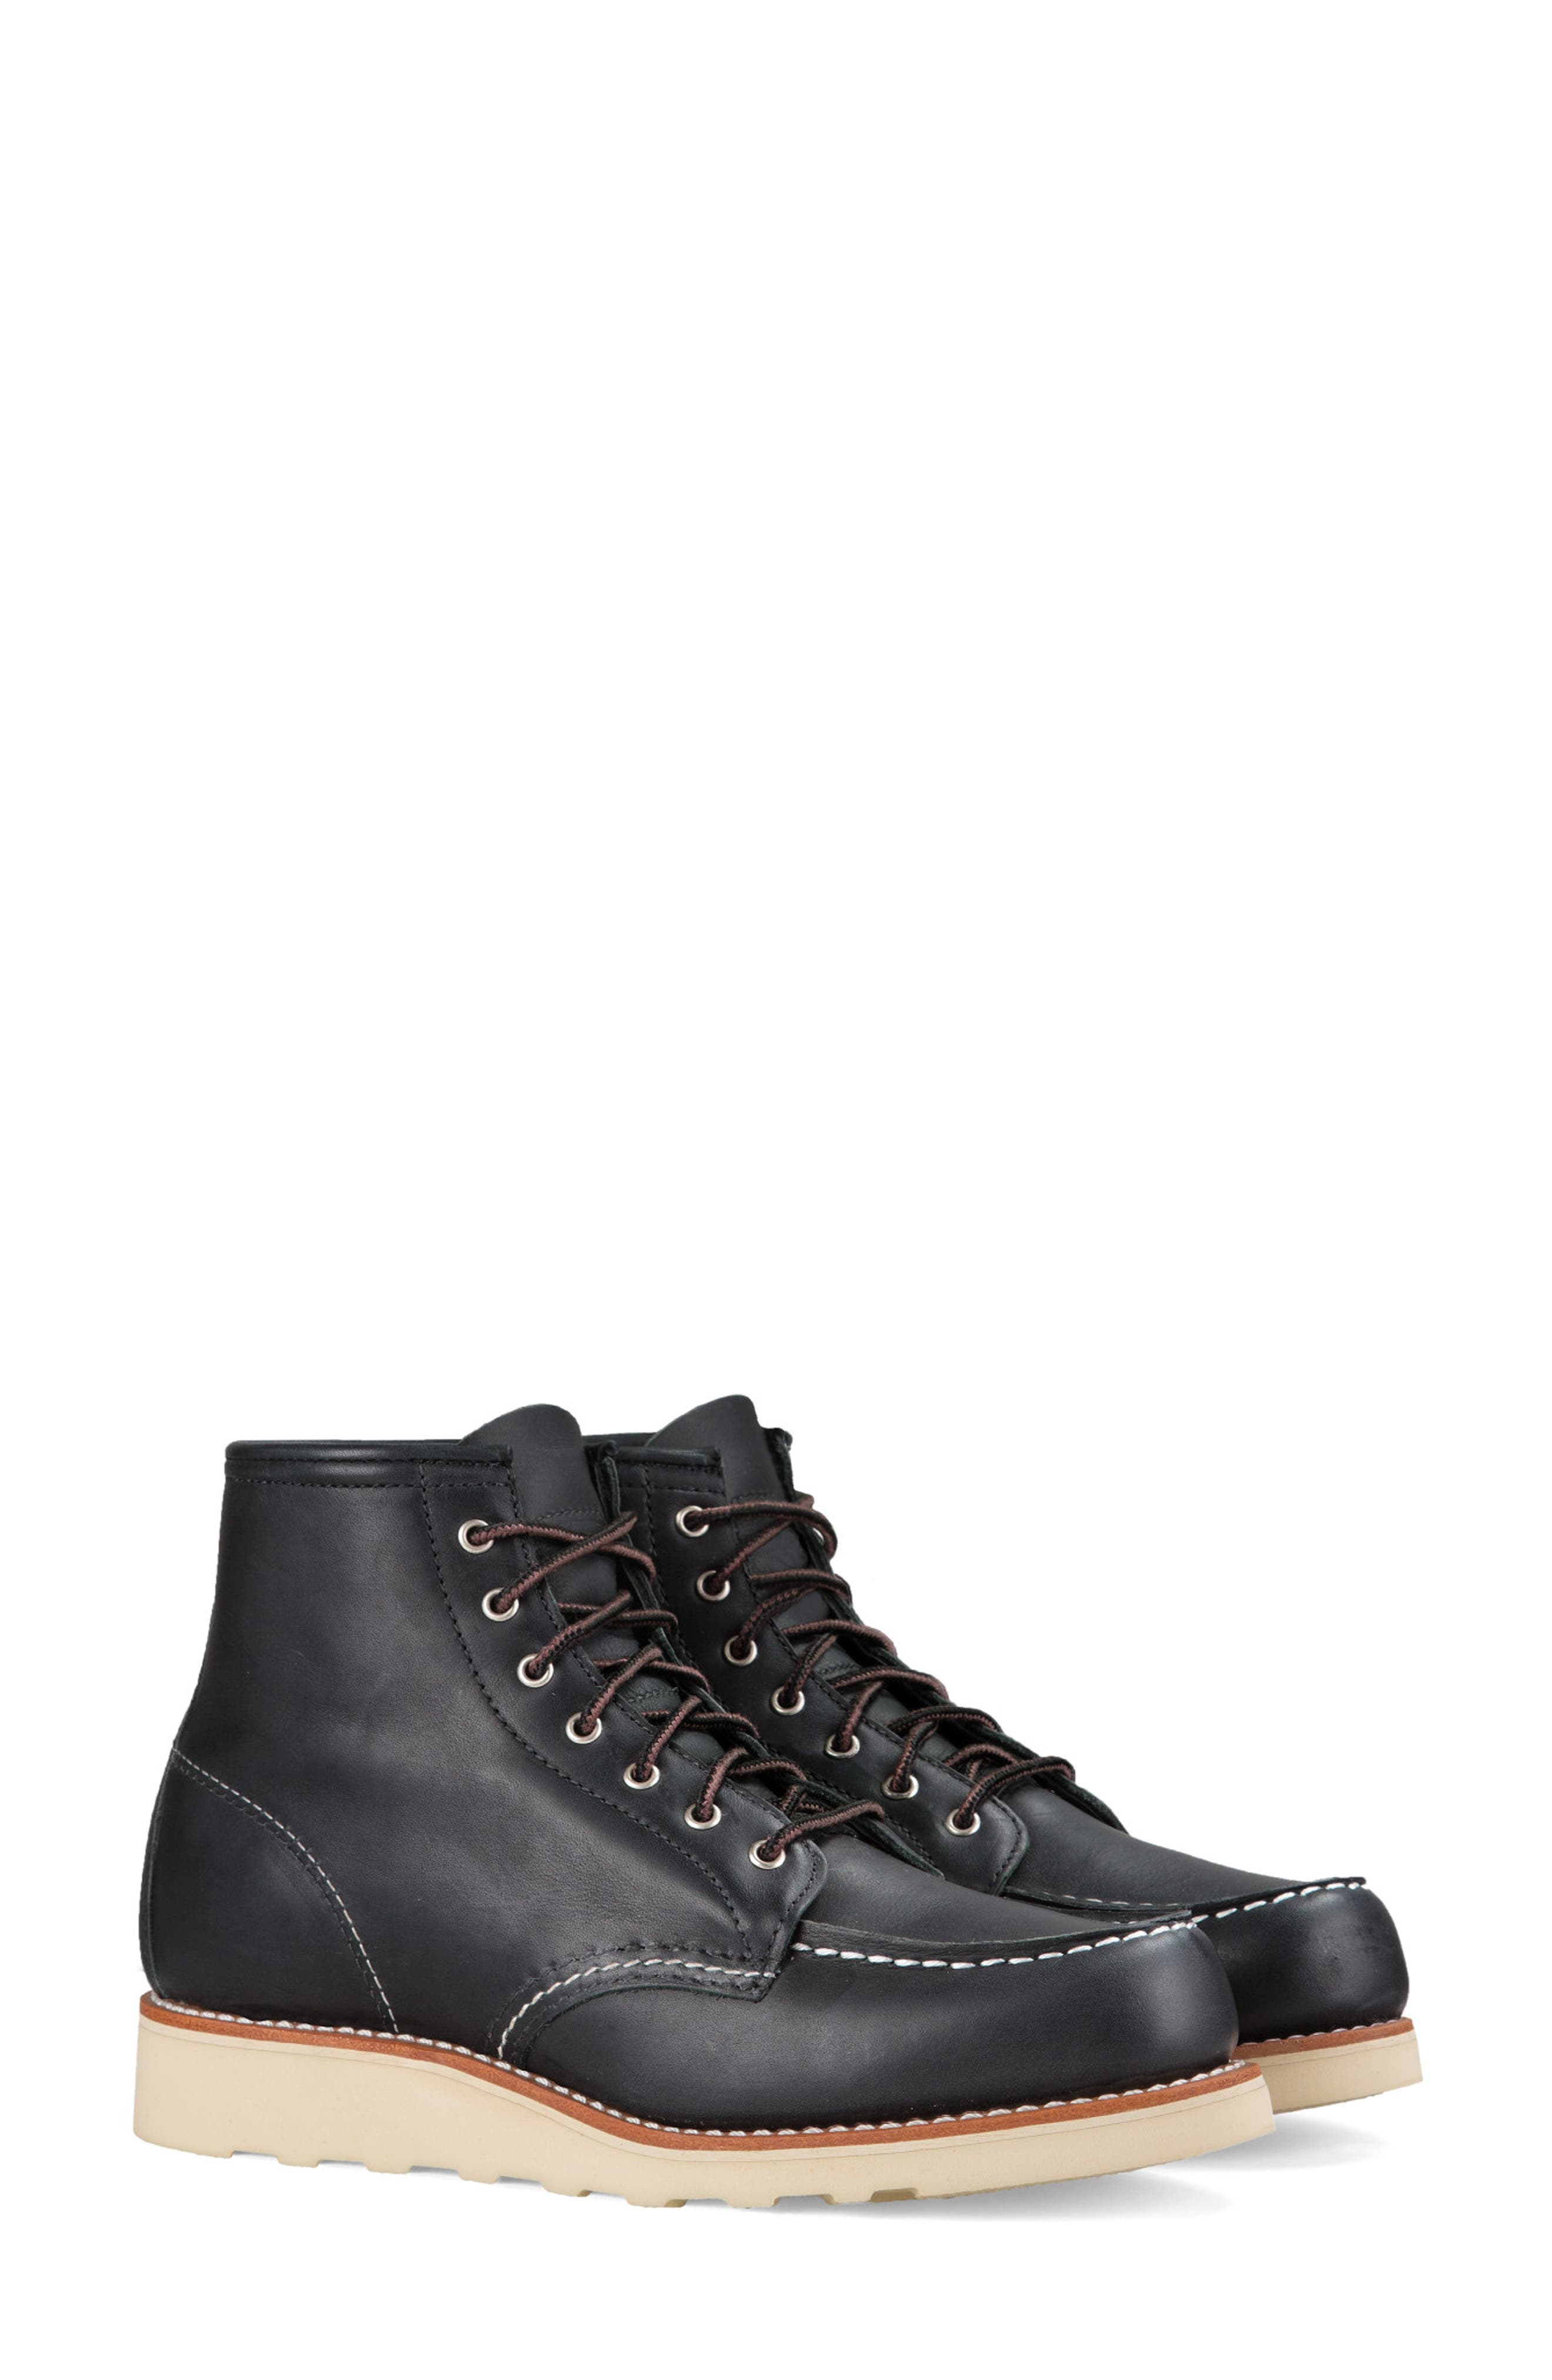 RED WING, 6-Inch Moc Boot, Main thumbnail 1, color, BLACK BOUNDARY LEATHER